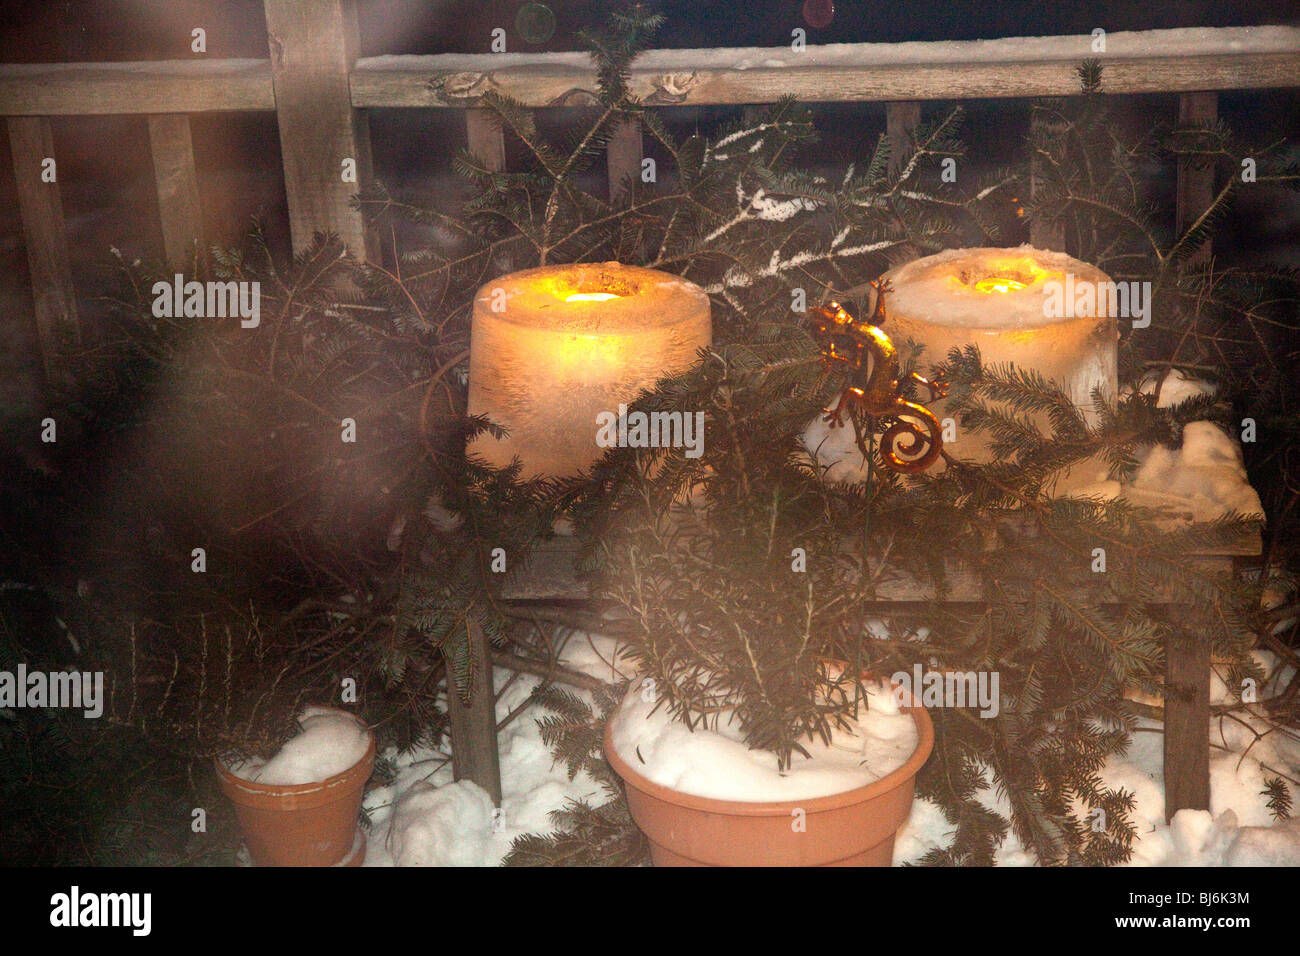 Candles burning on deck in winter artistically surrounded by evergreen bows and snow. St Paul Minnesota USA - Stock Image